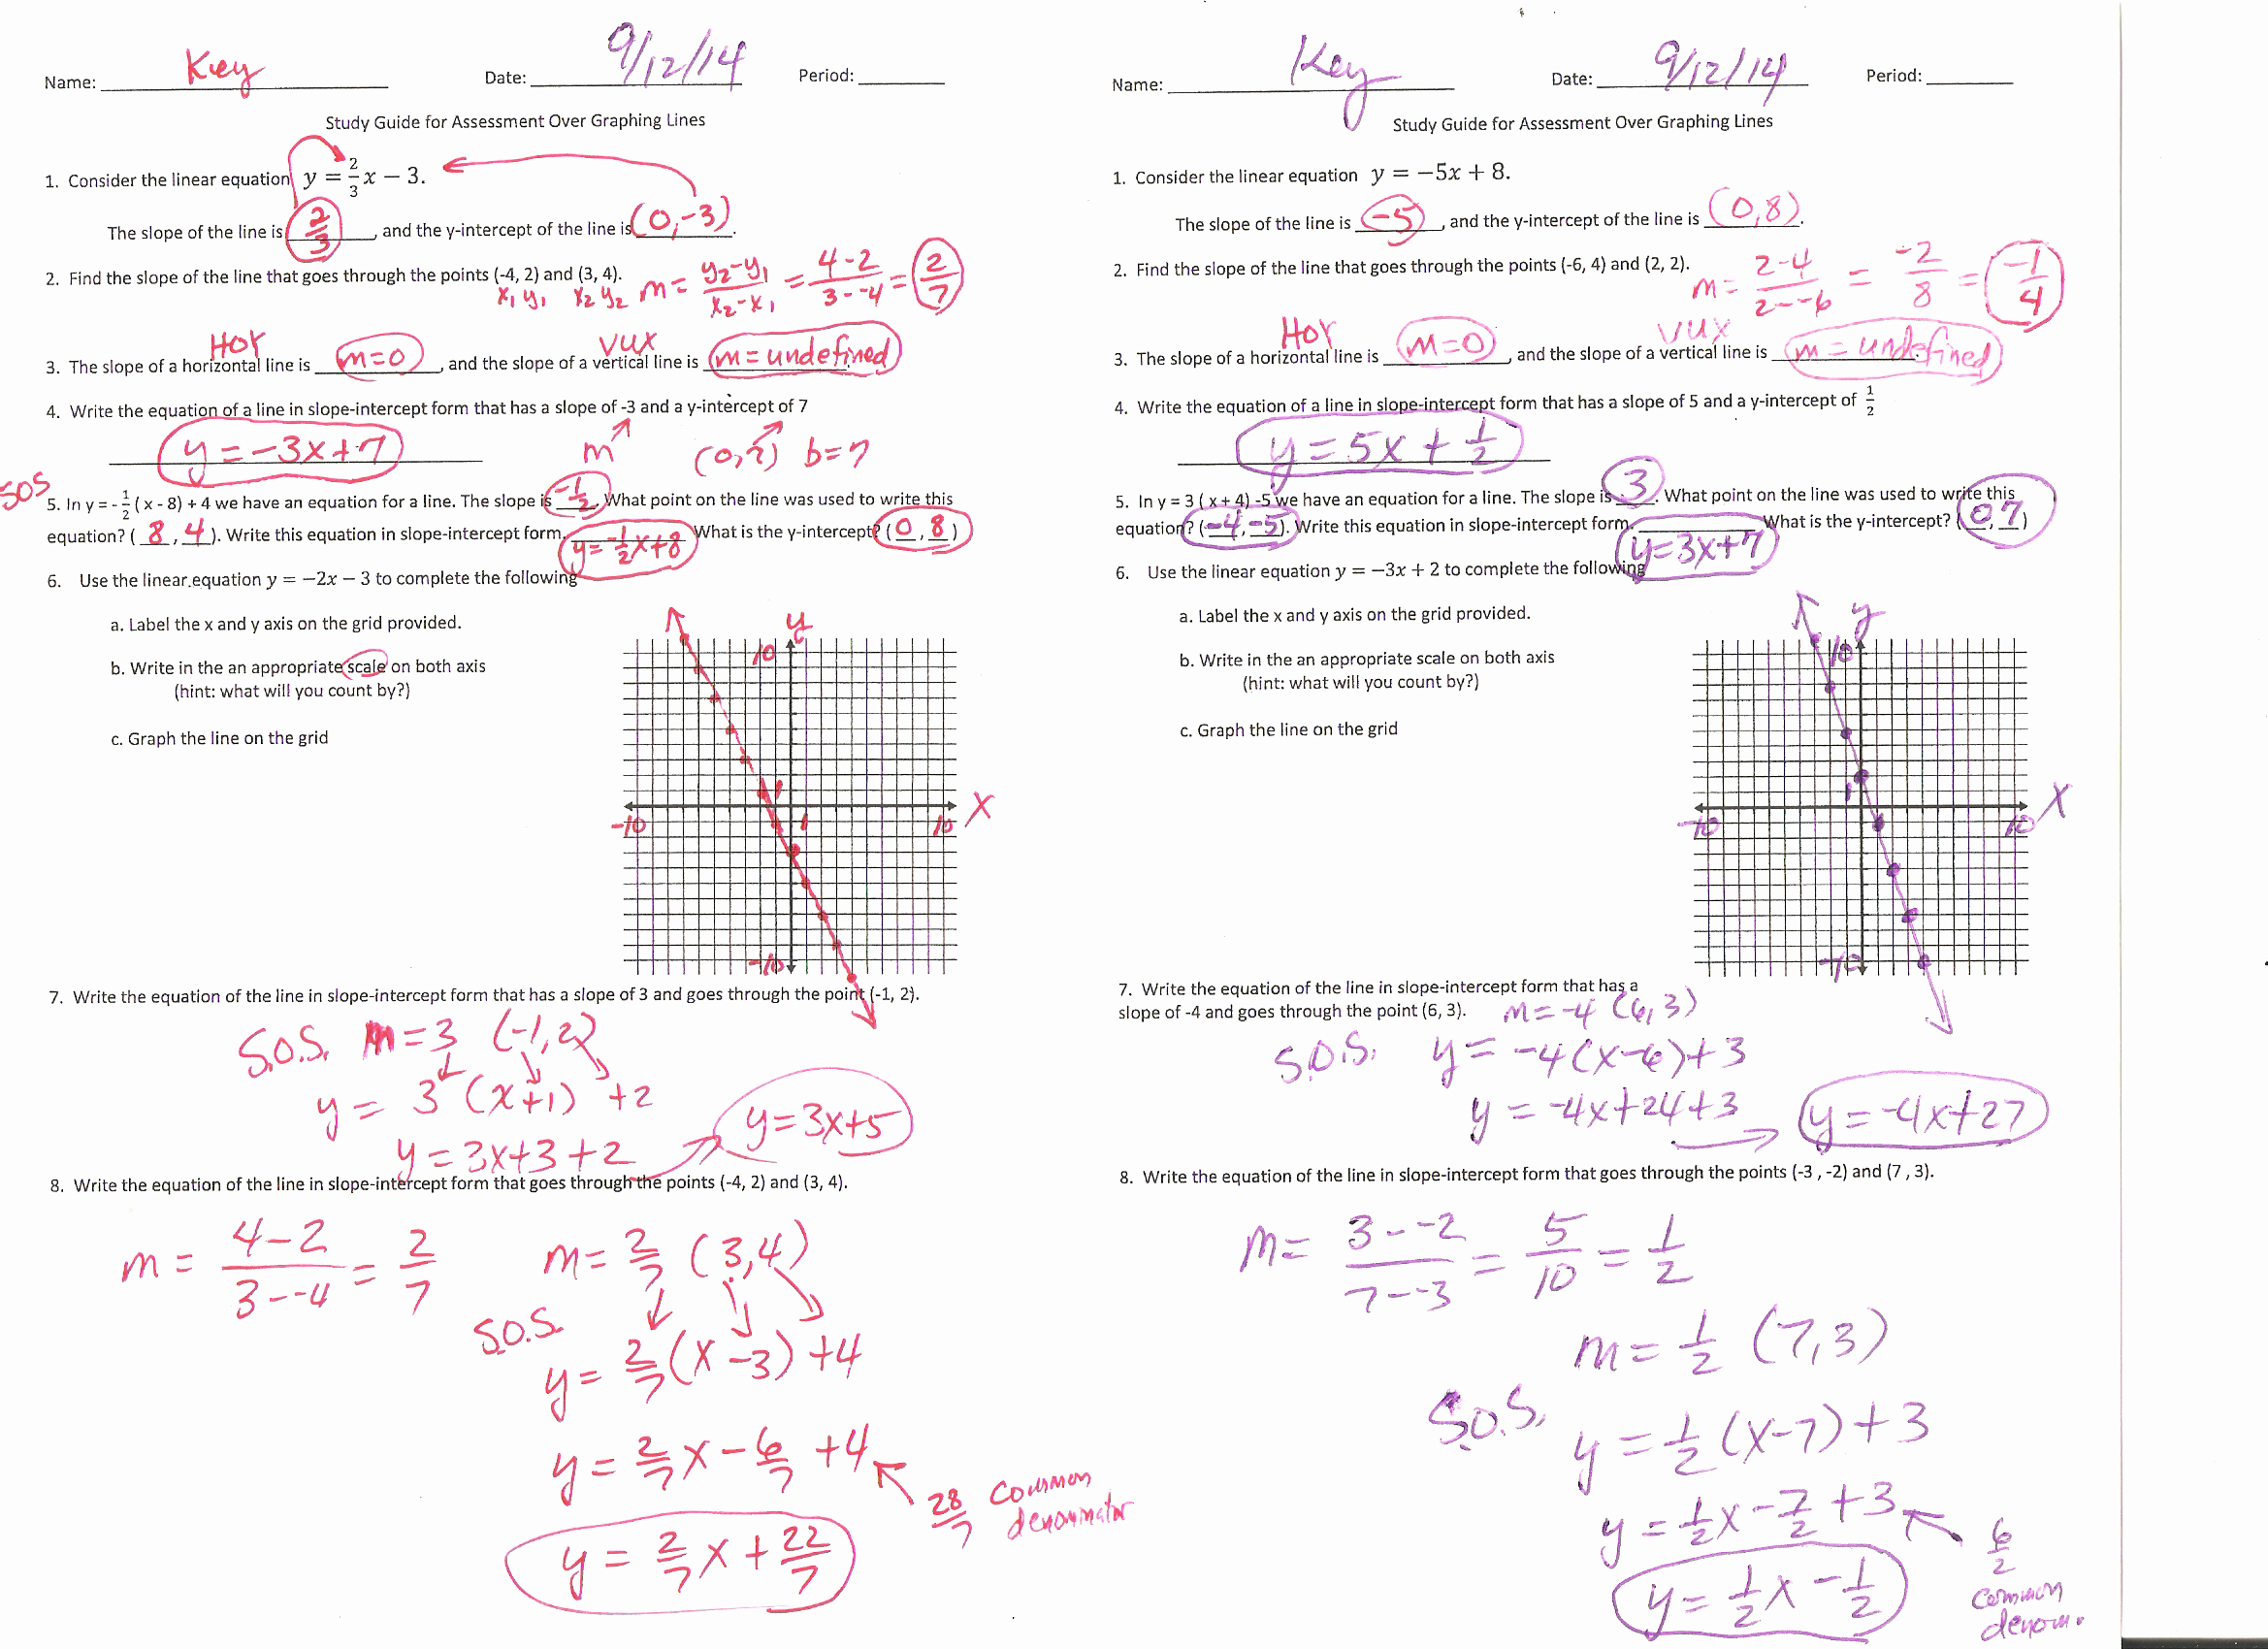 Algebra 2 Review Worksheet Inspirational Slope and Linear Equations Test Study Guide Answer Key